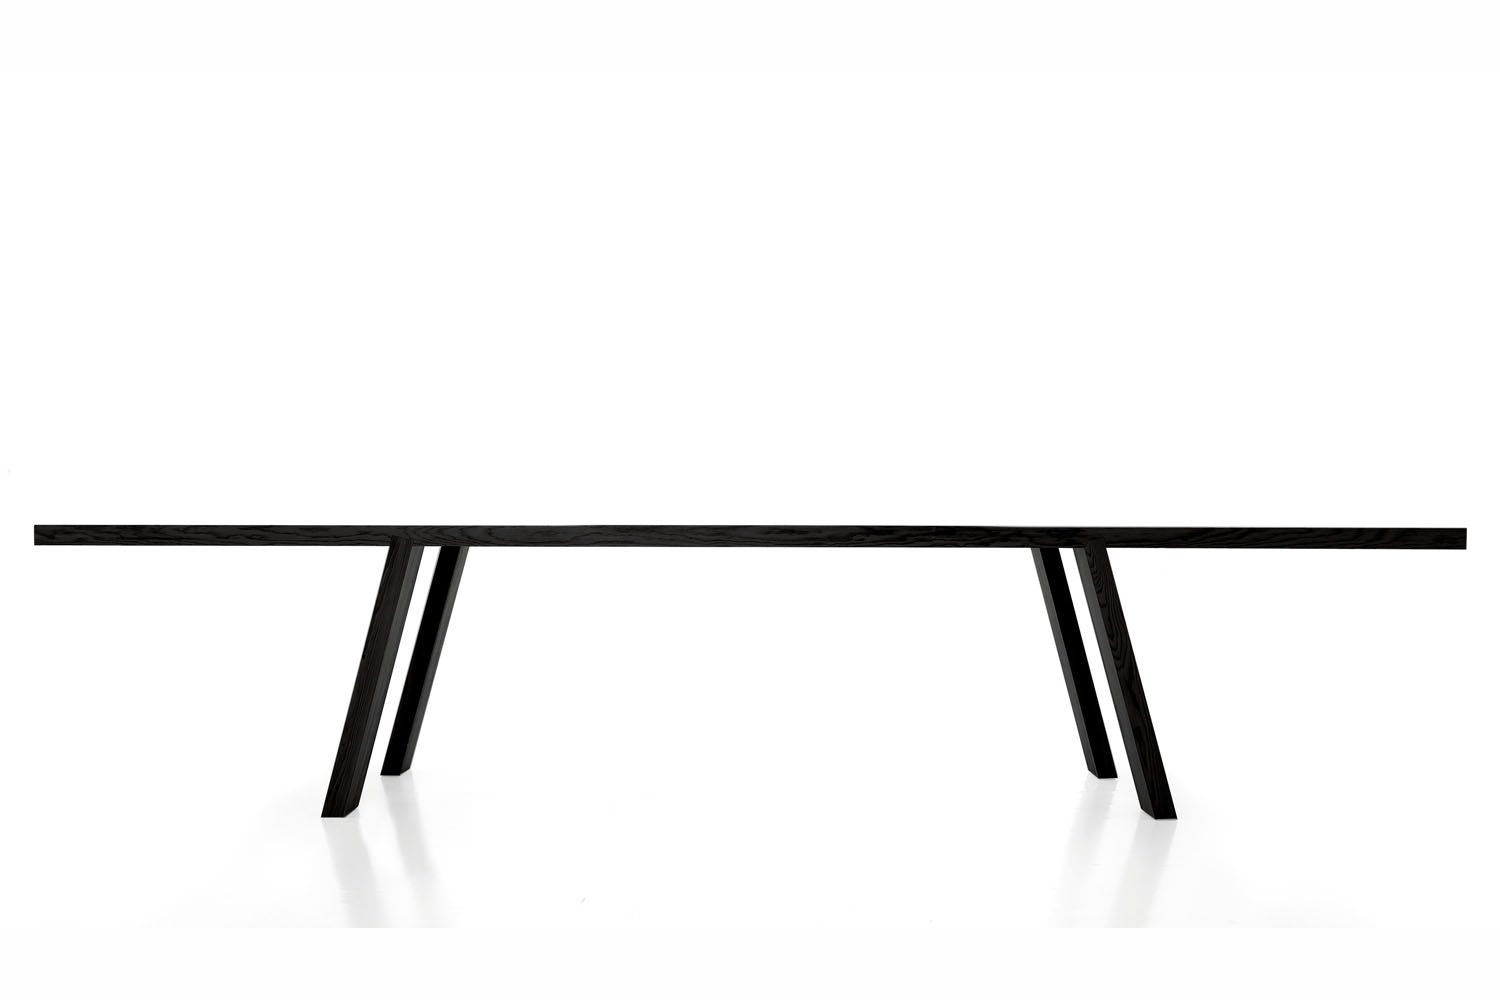 Minimo Large Table by Piero Lissoni for Porro